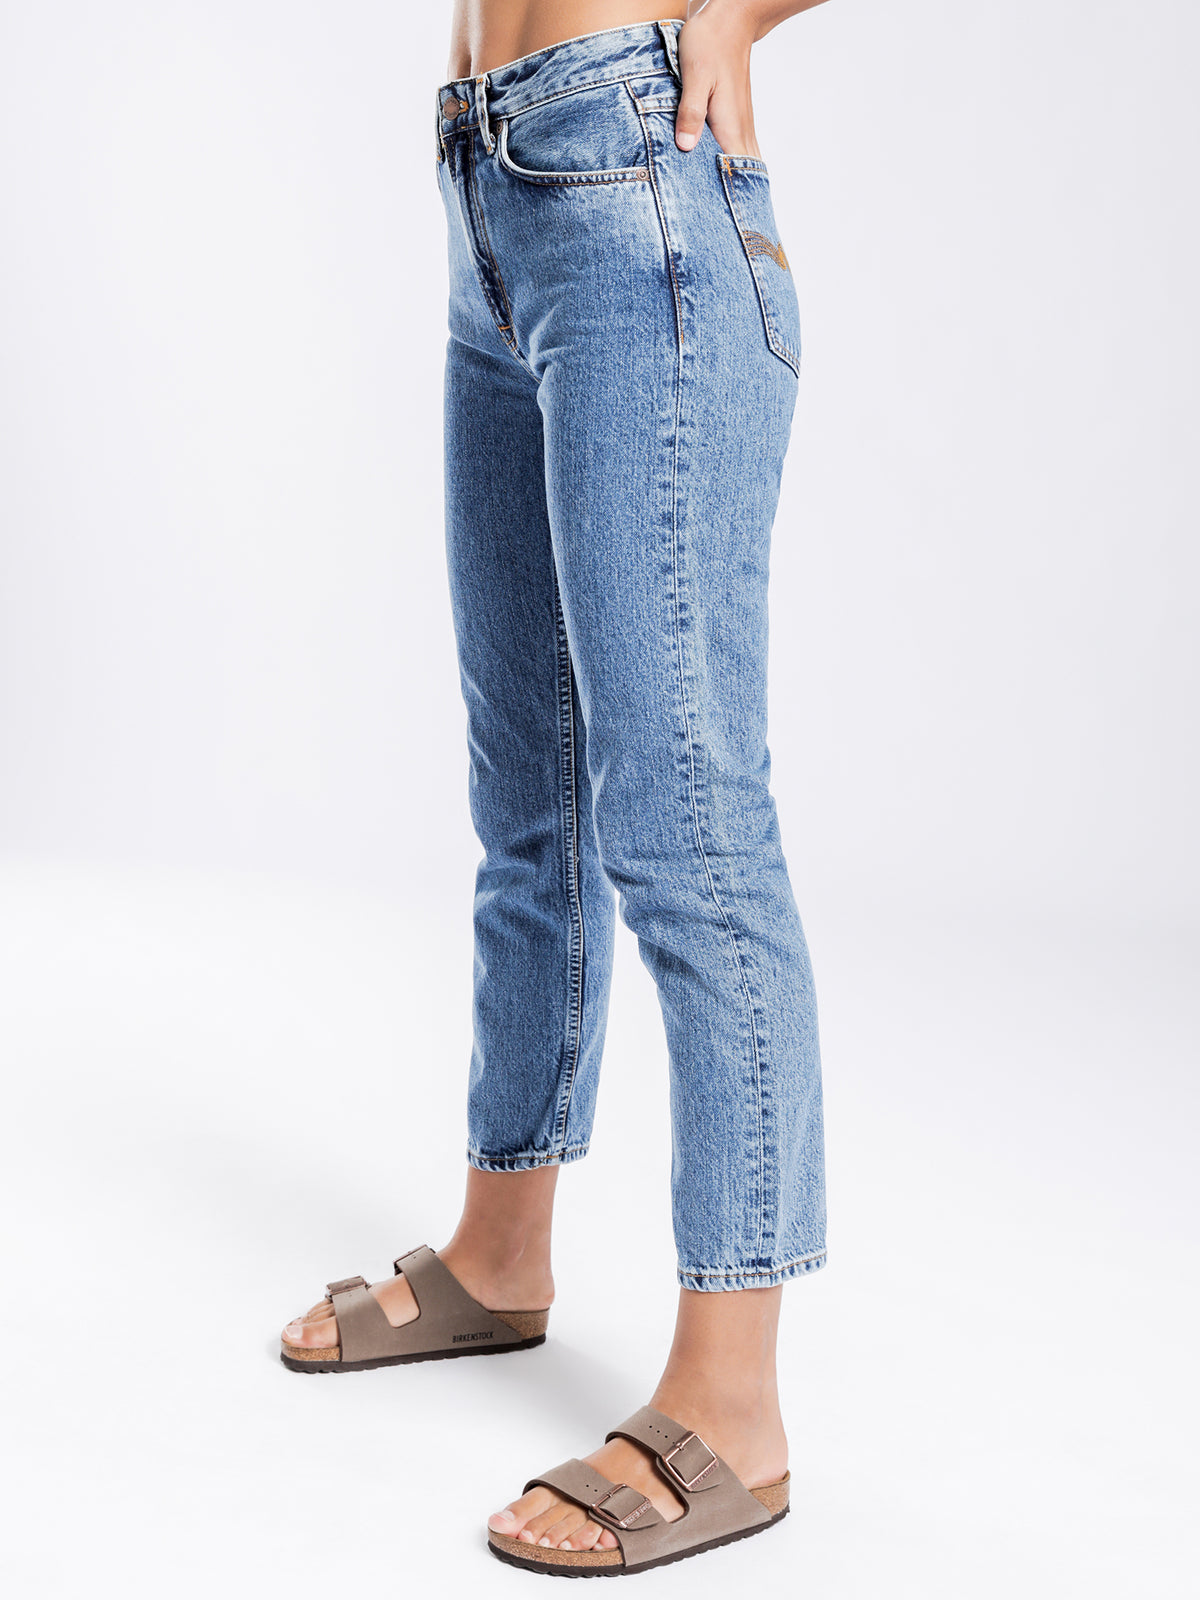 Breezy Britt Tapered Jeans in Friendly Blue